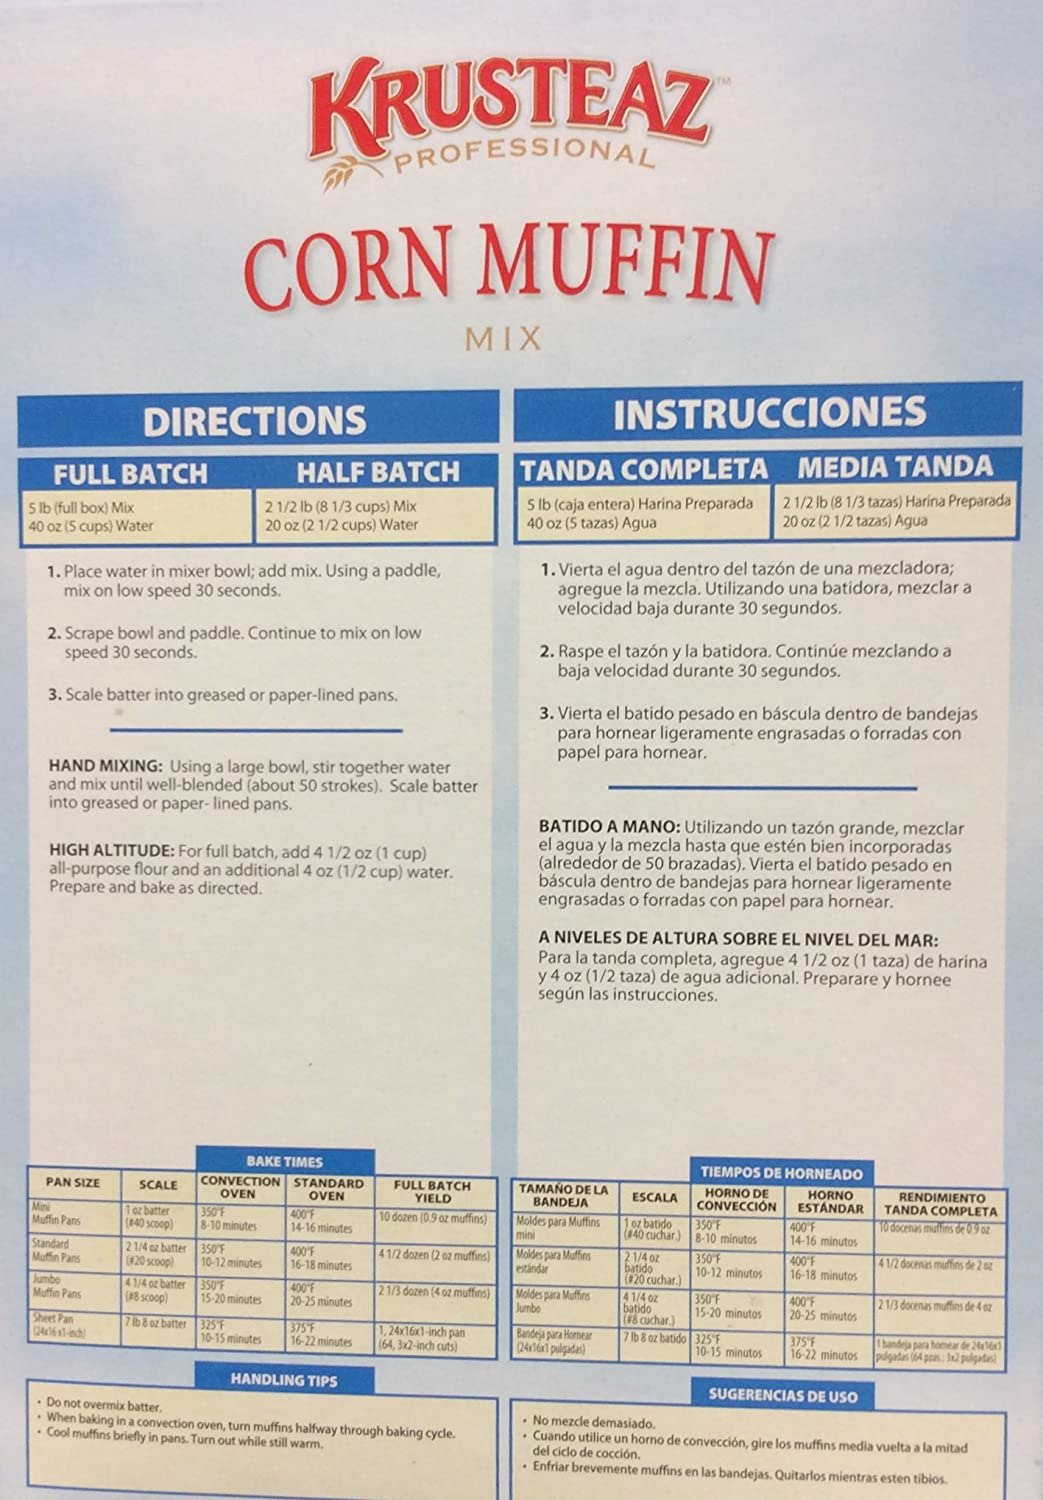 Amazon.com : Krusteaz CORN MUFFIN Mix 5lbs. (3-Pack) Restaurant Quality : Grocery & Gourmet Food